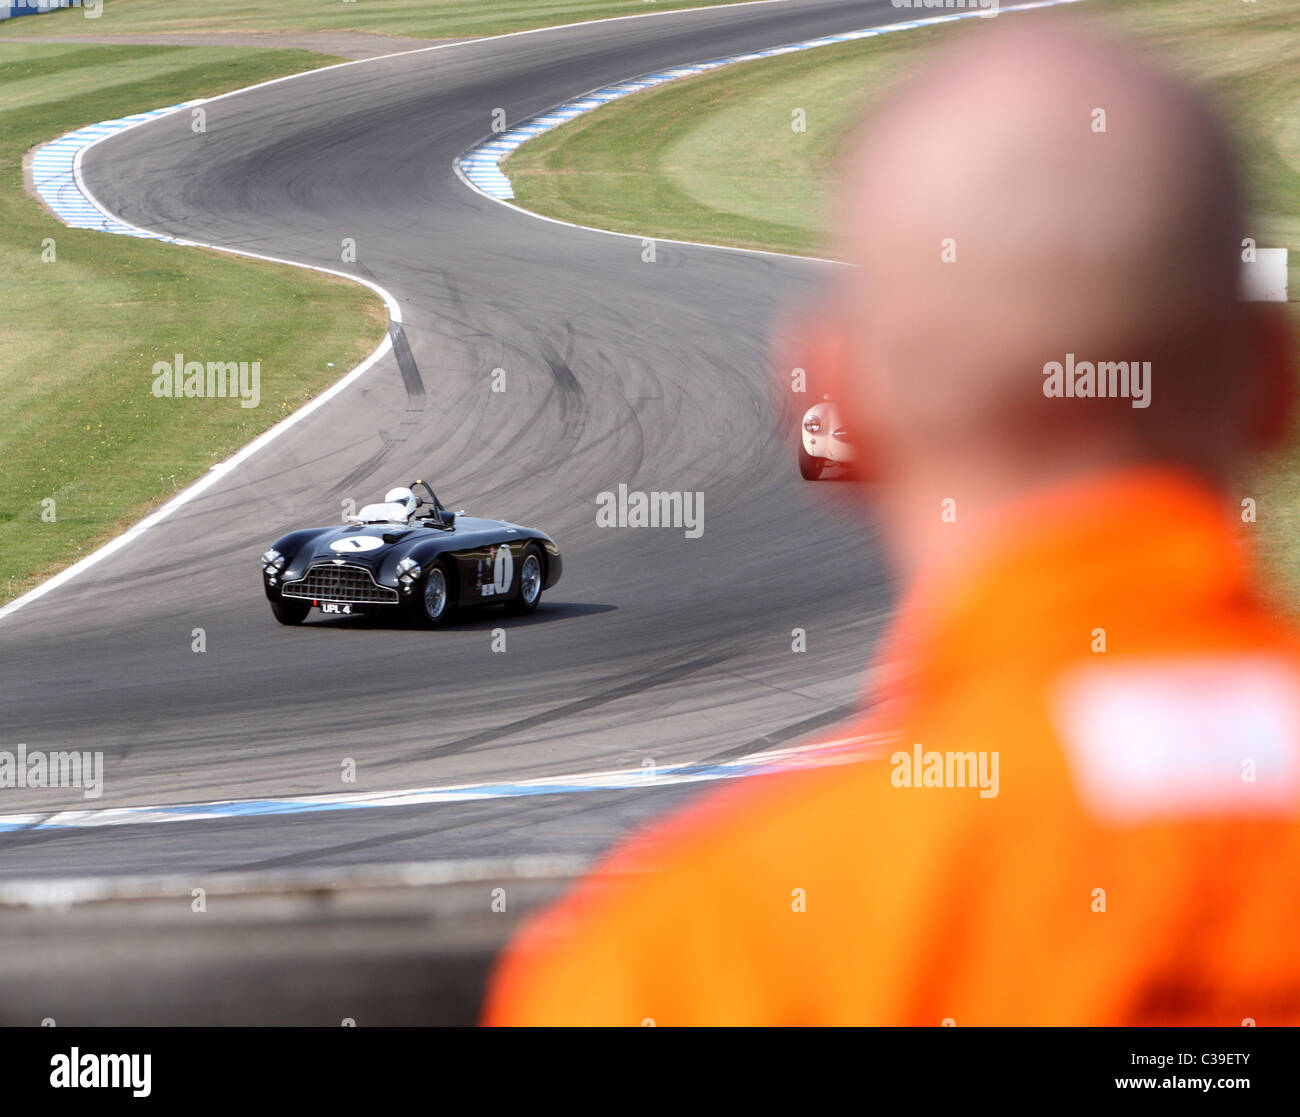 Aston Martin DB3 on track as viewed by race marshal - Stock Image